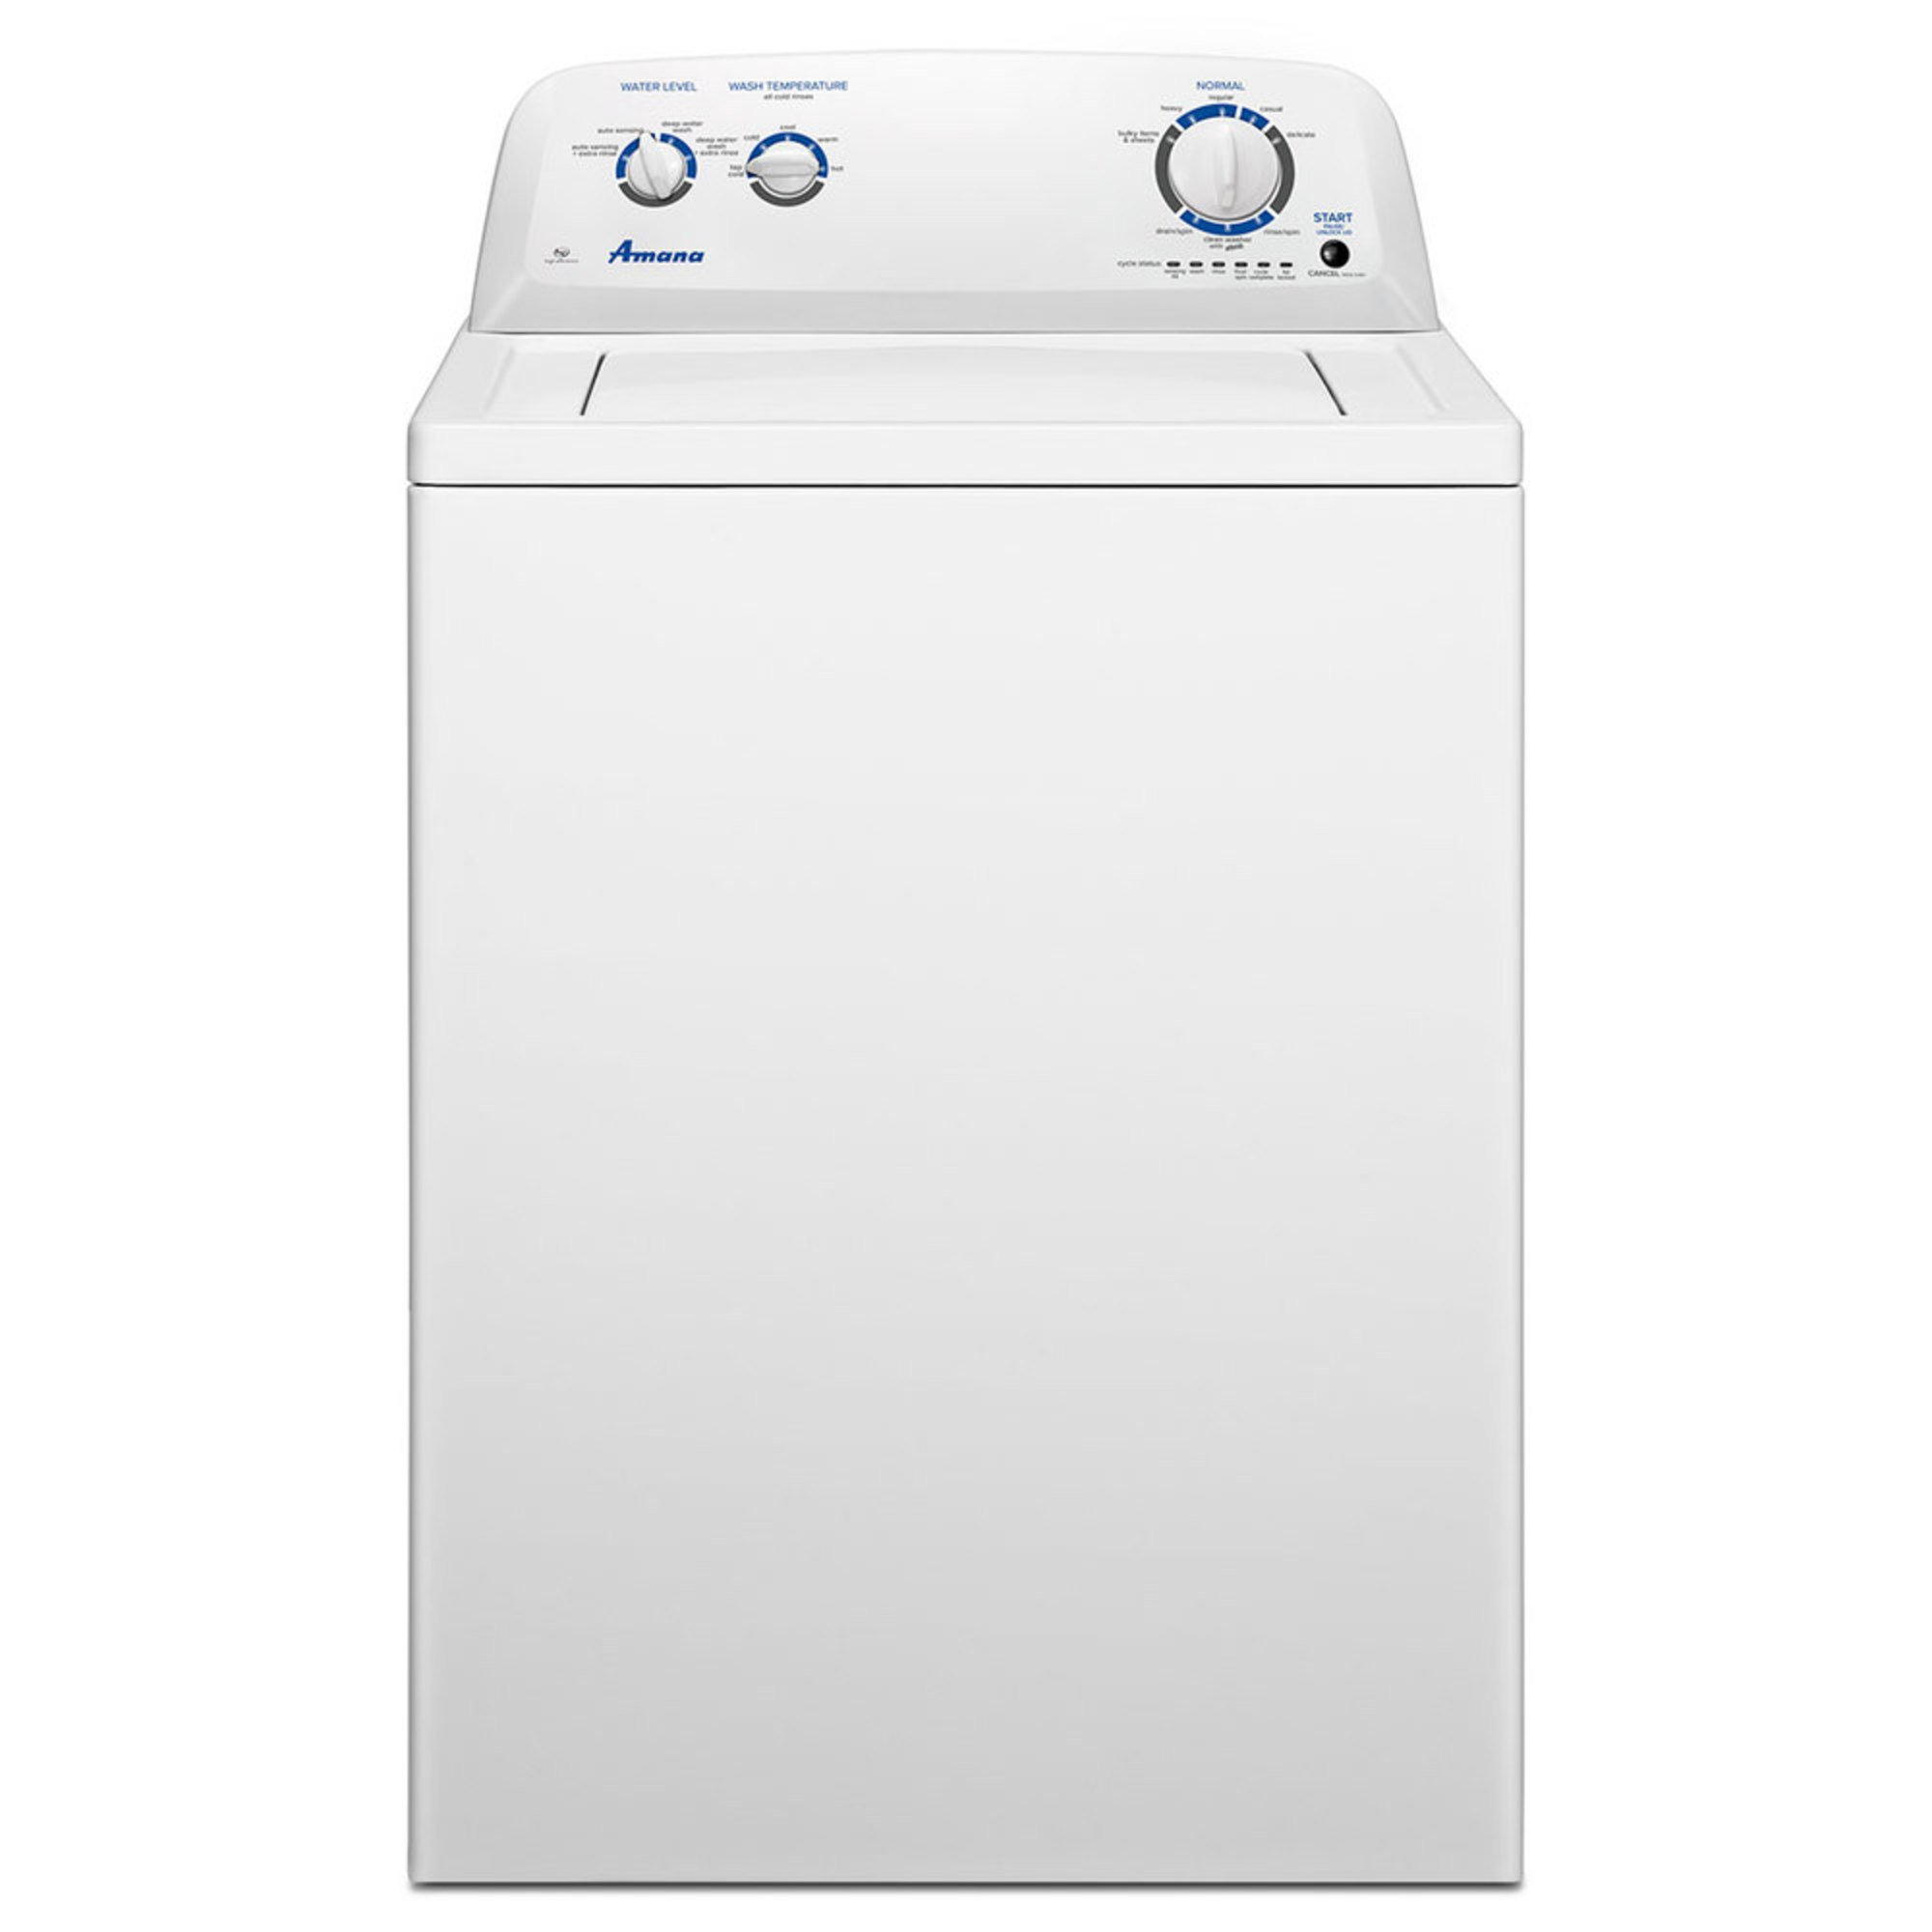 top load washing machine with agitator reviews